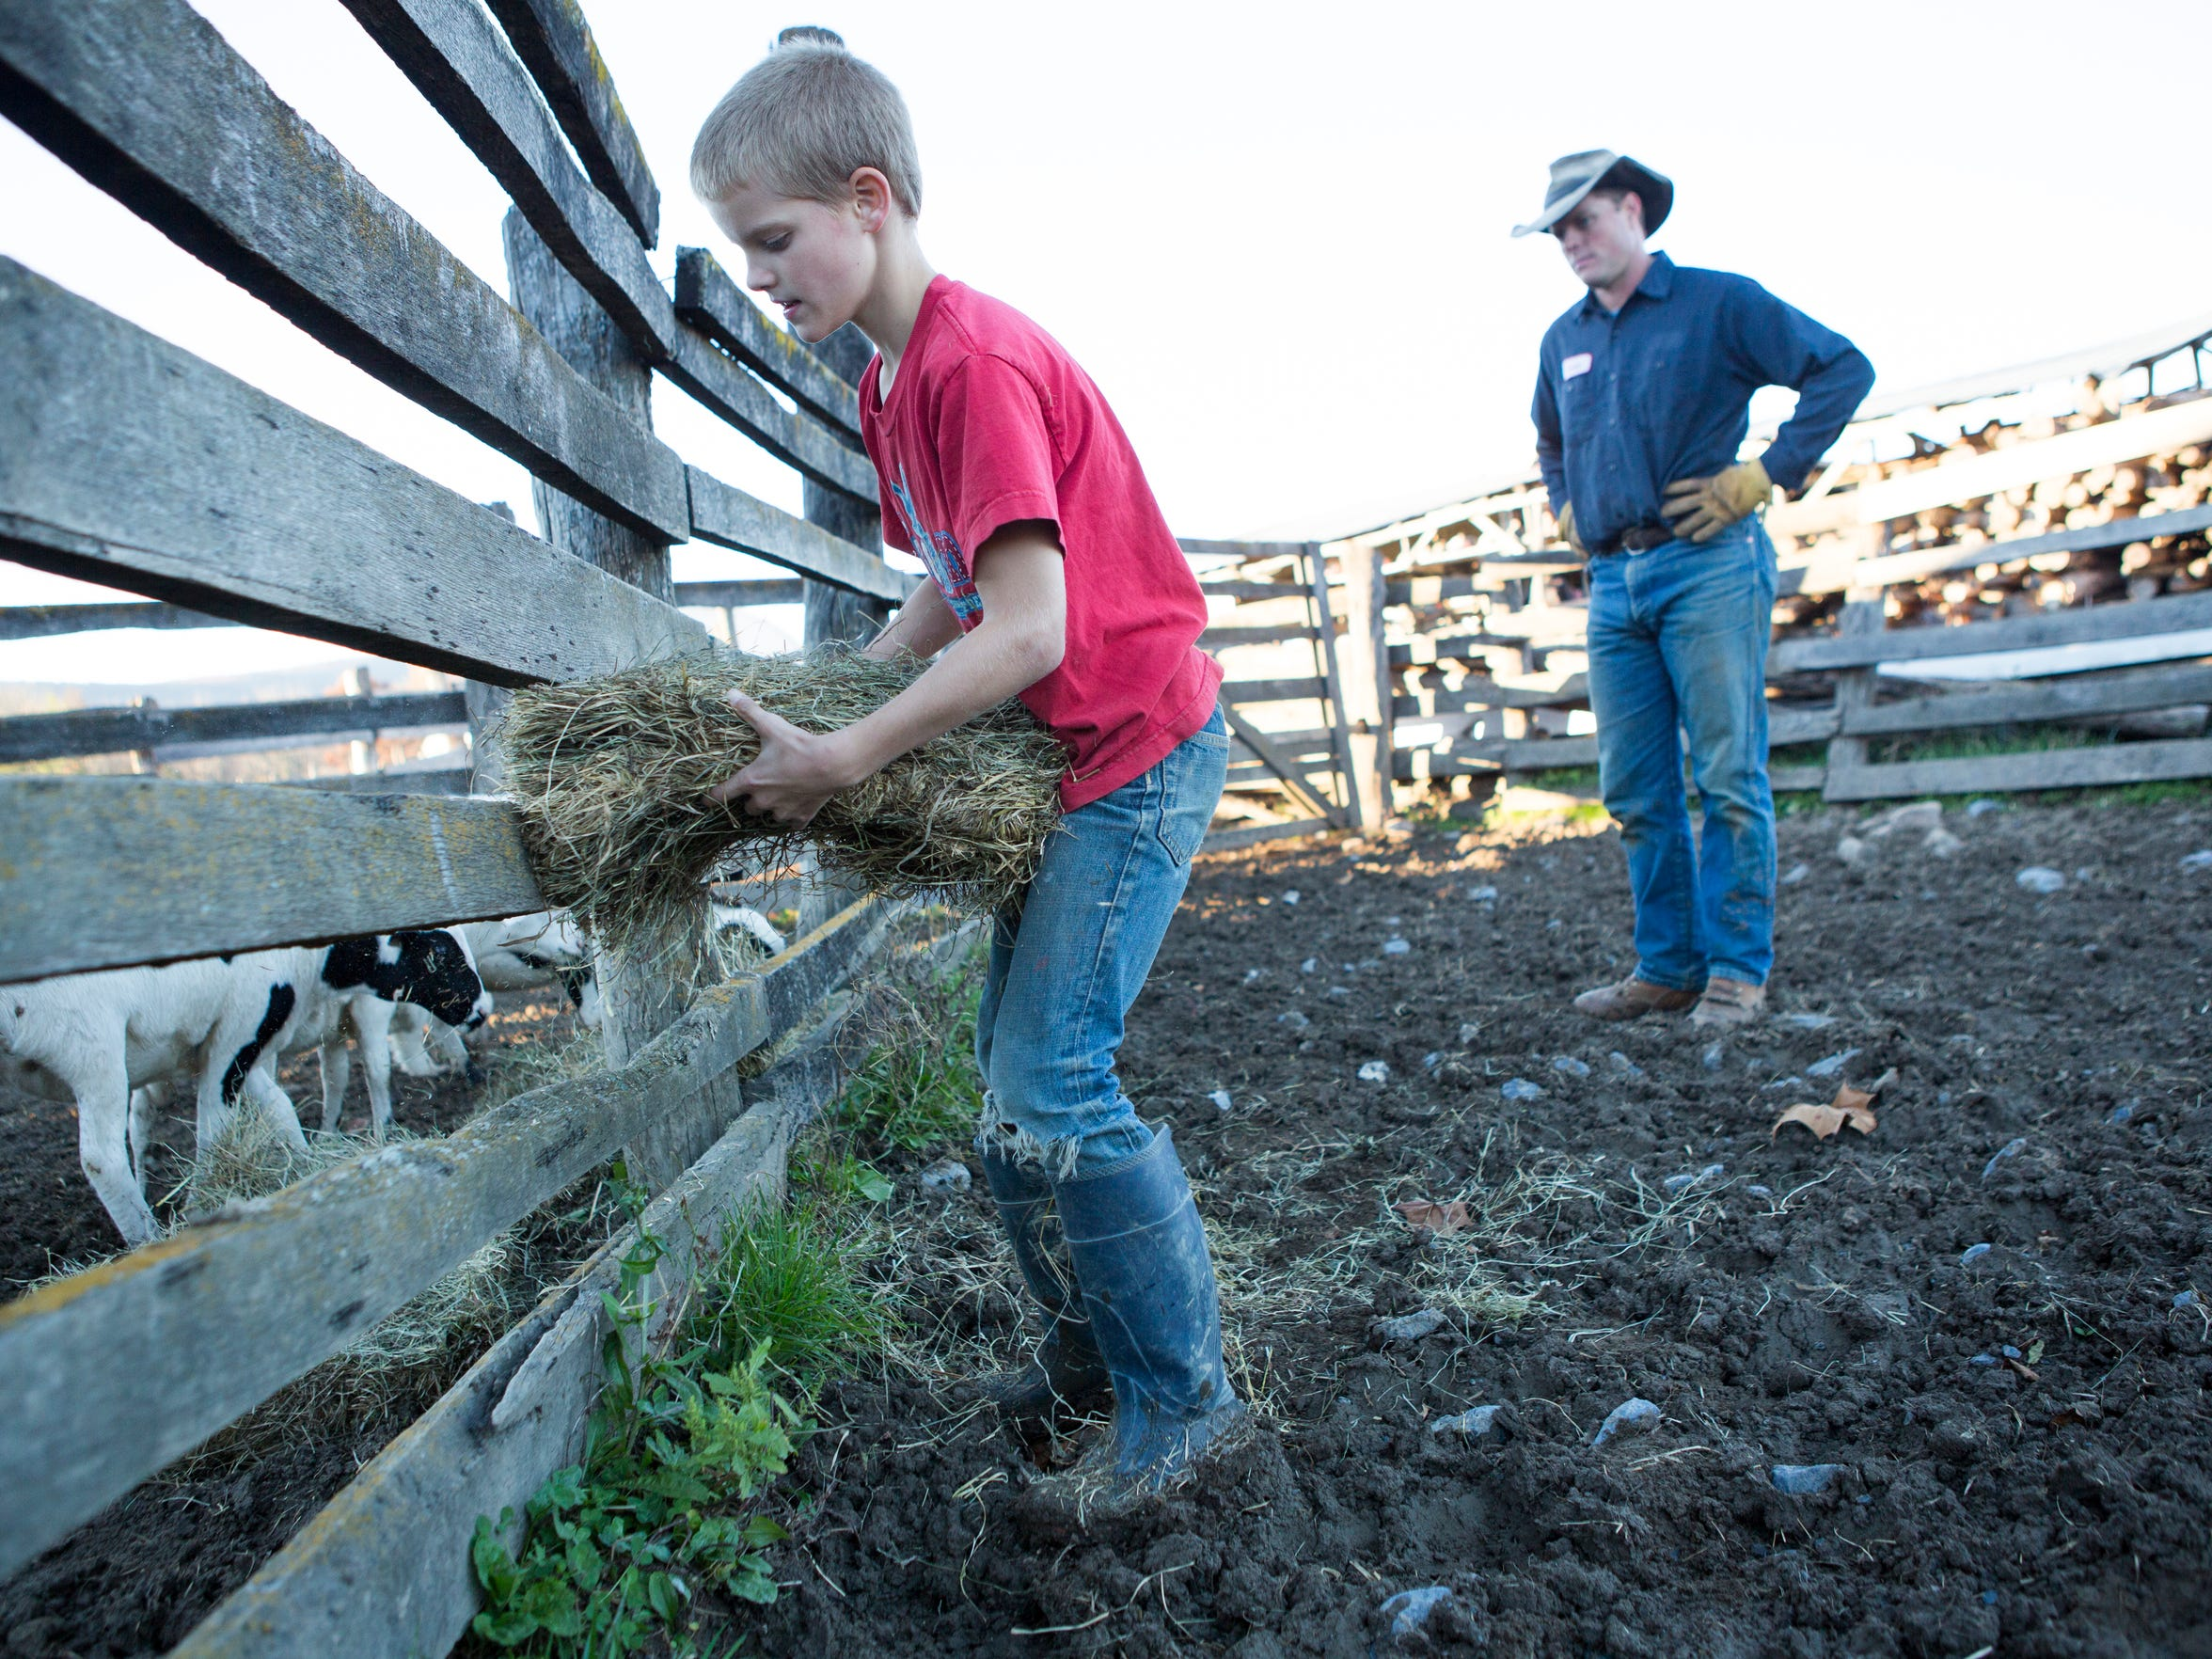 Andrew Salatin, 10, feeds sheep in their pen with his father, Daniel Salatin, after the animals escaped from their forest enclose at Polyface Farms in Swoope on Friday, Oct. 30, 2015.